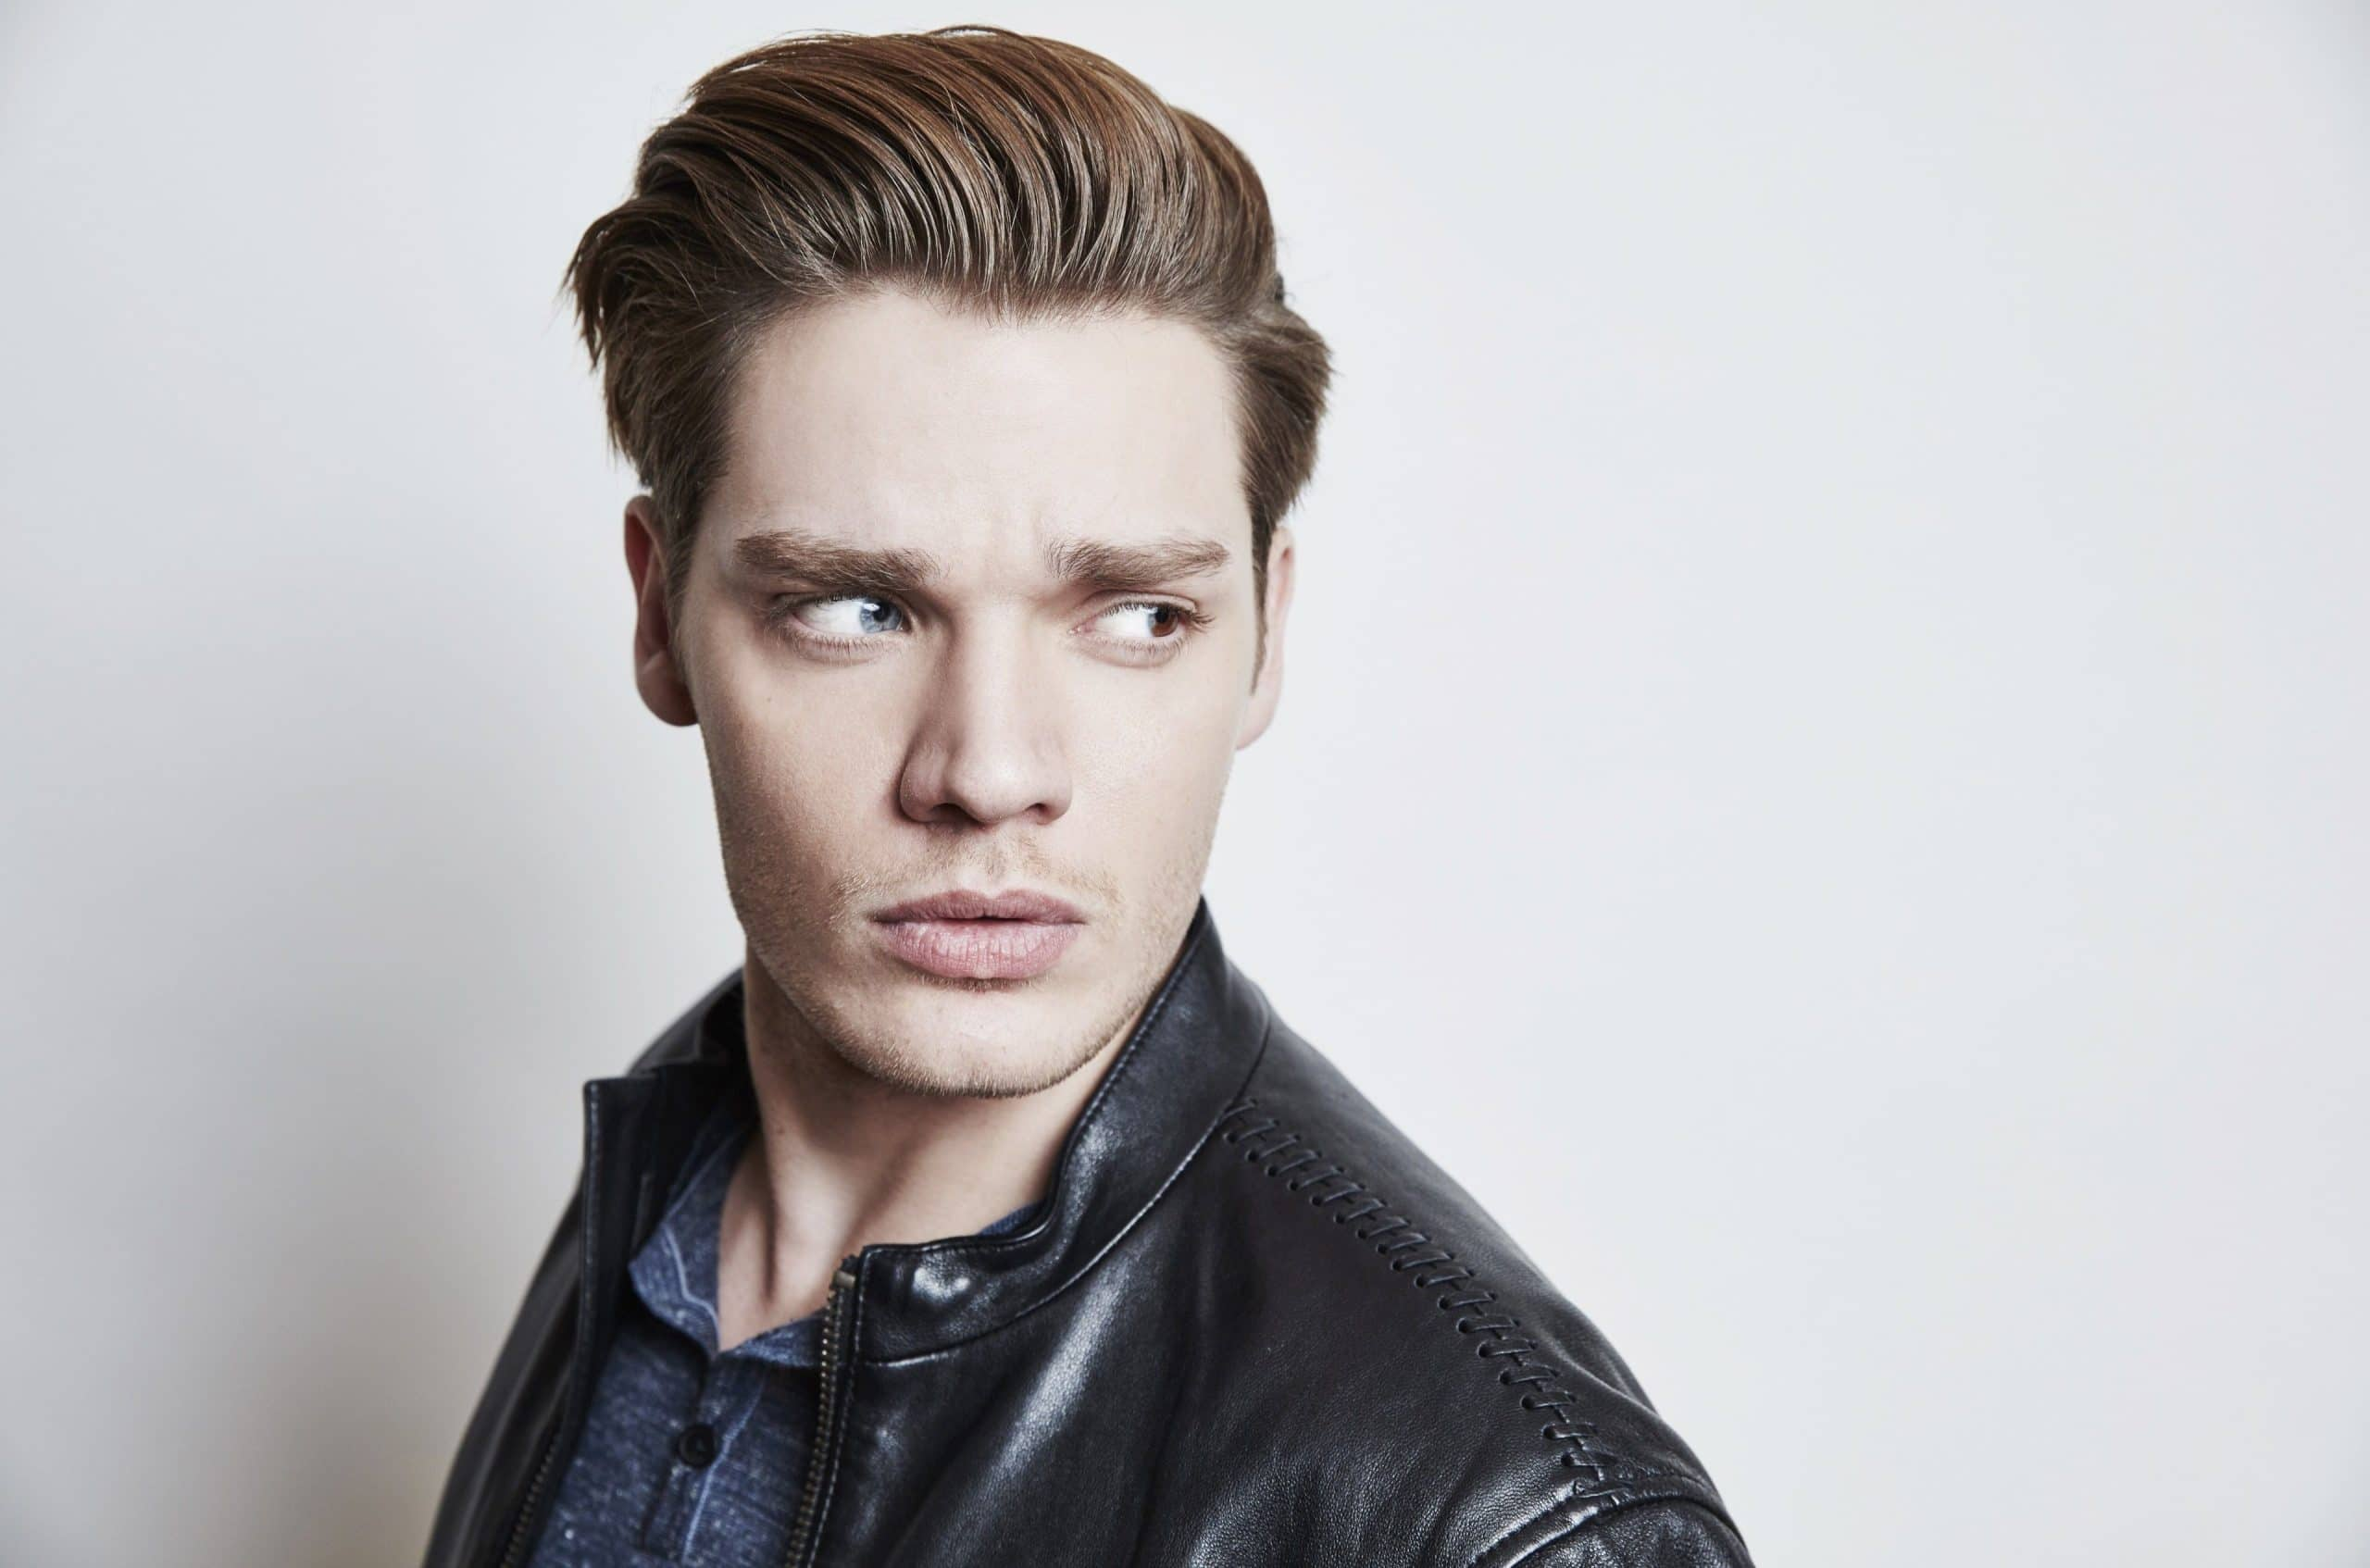 Dominic Sherwood British Actor and Model